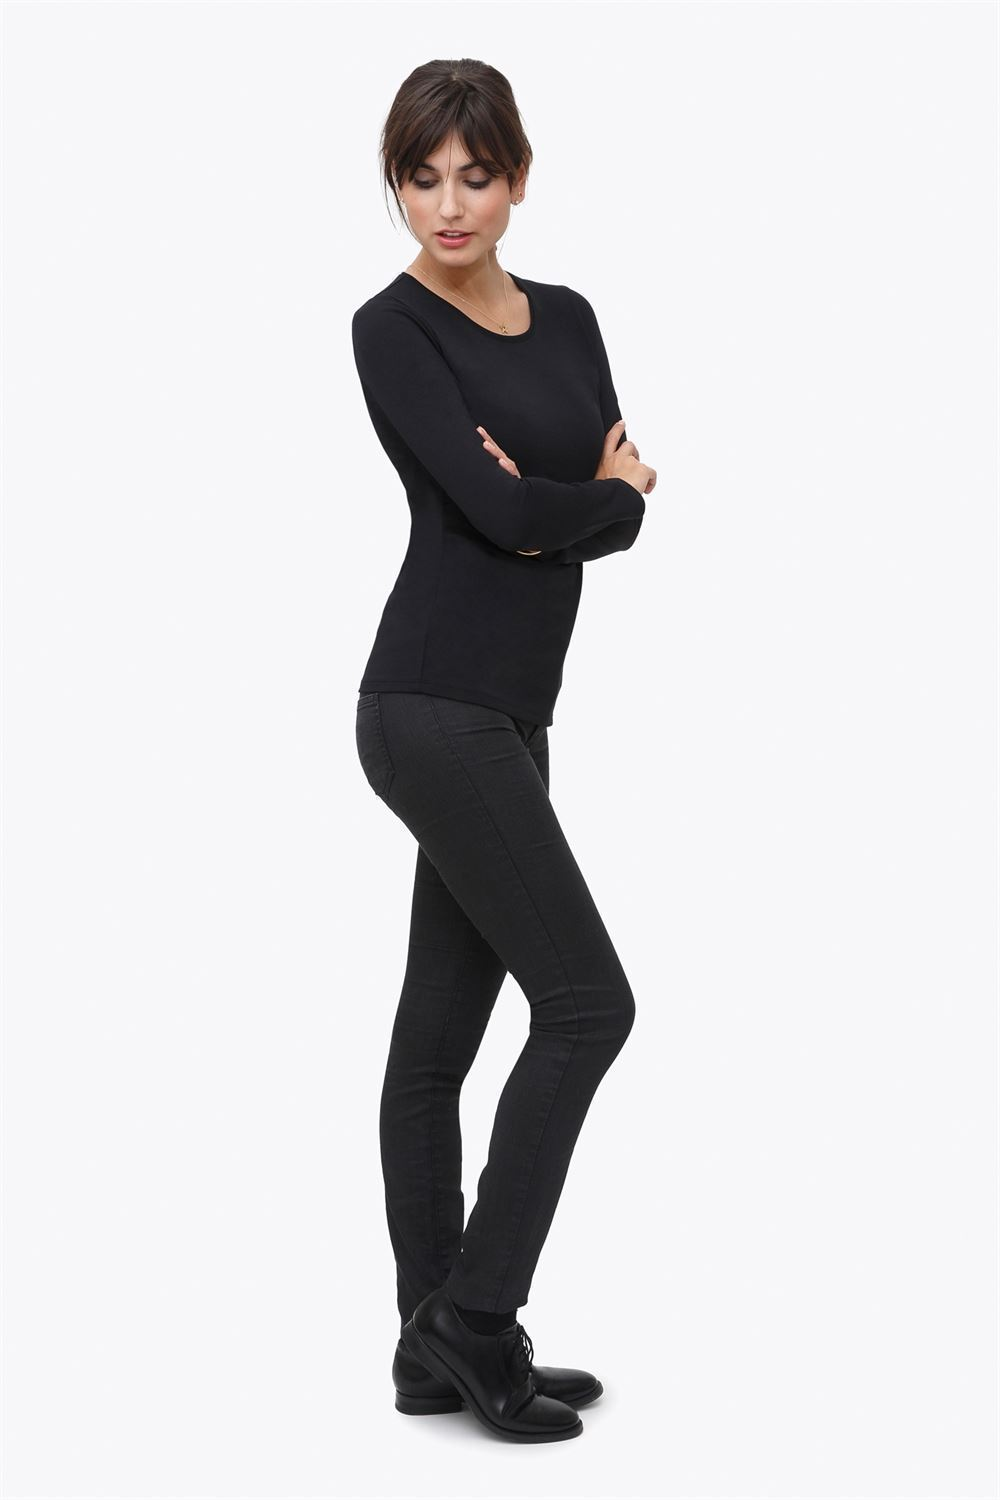 Black classic nursing top made of organic cotton - Seen in full figur